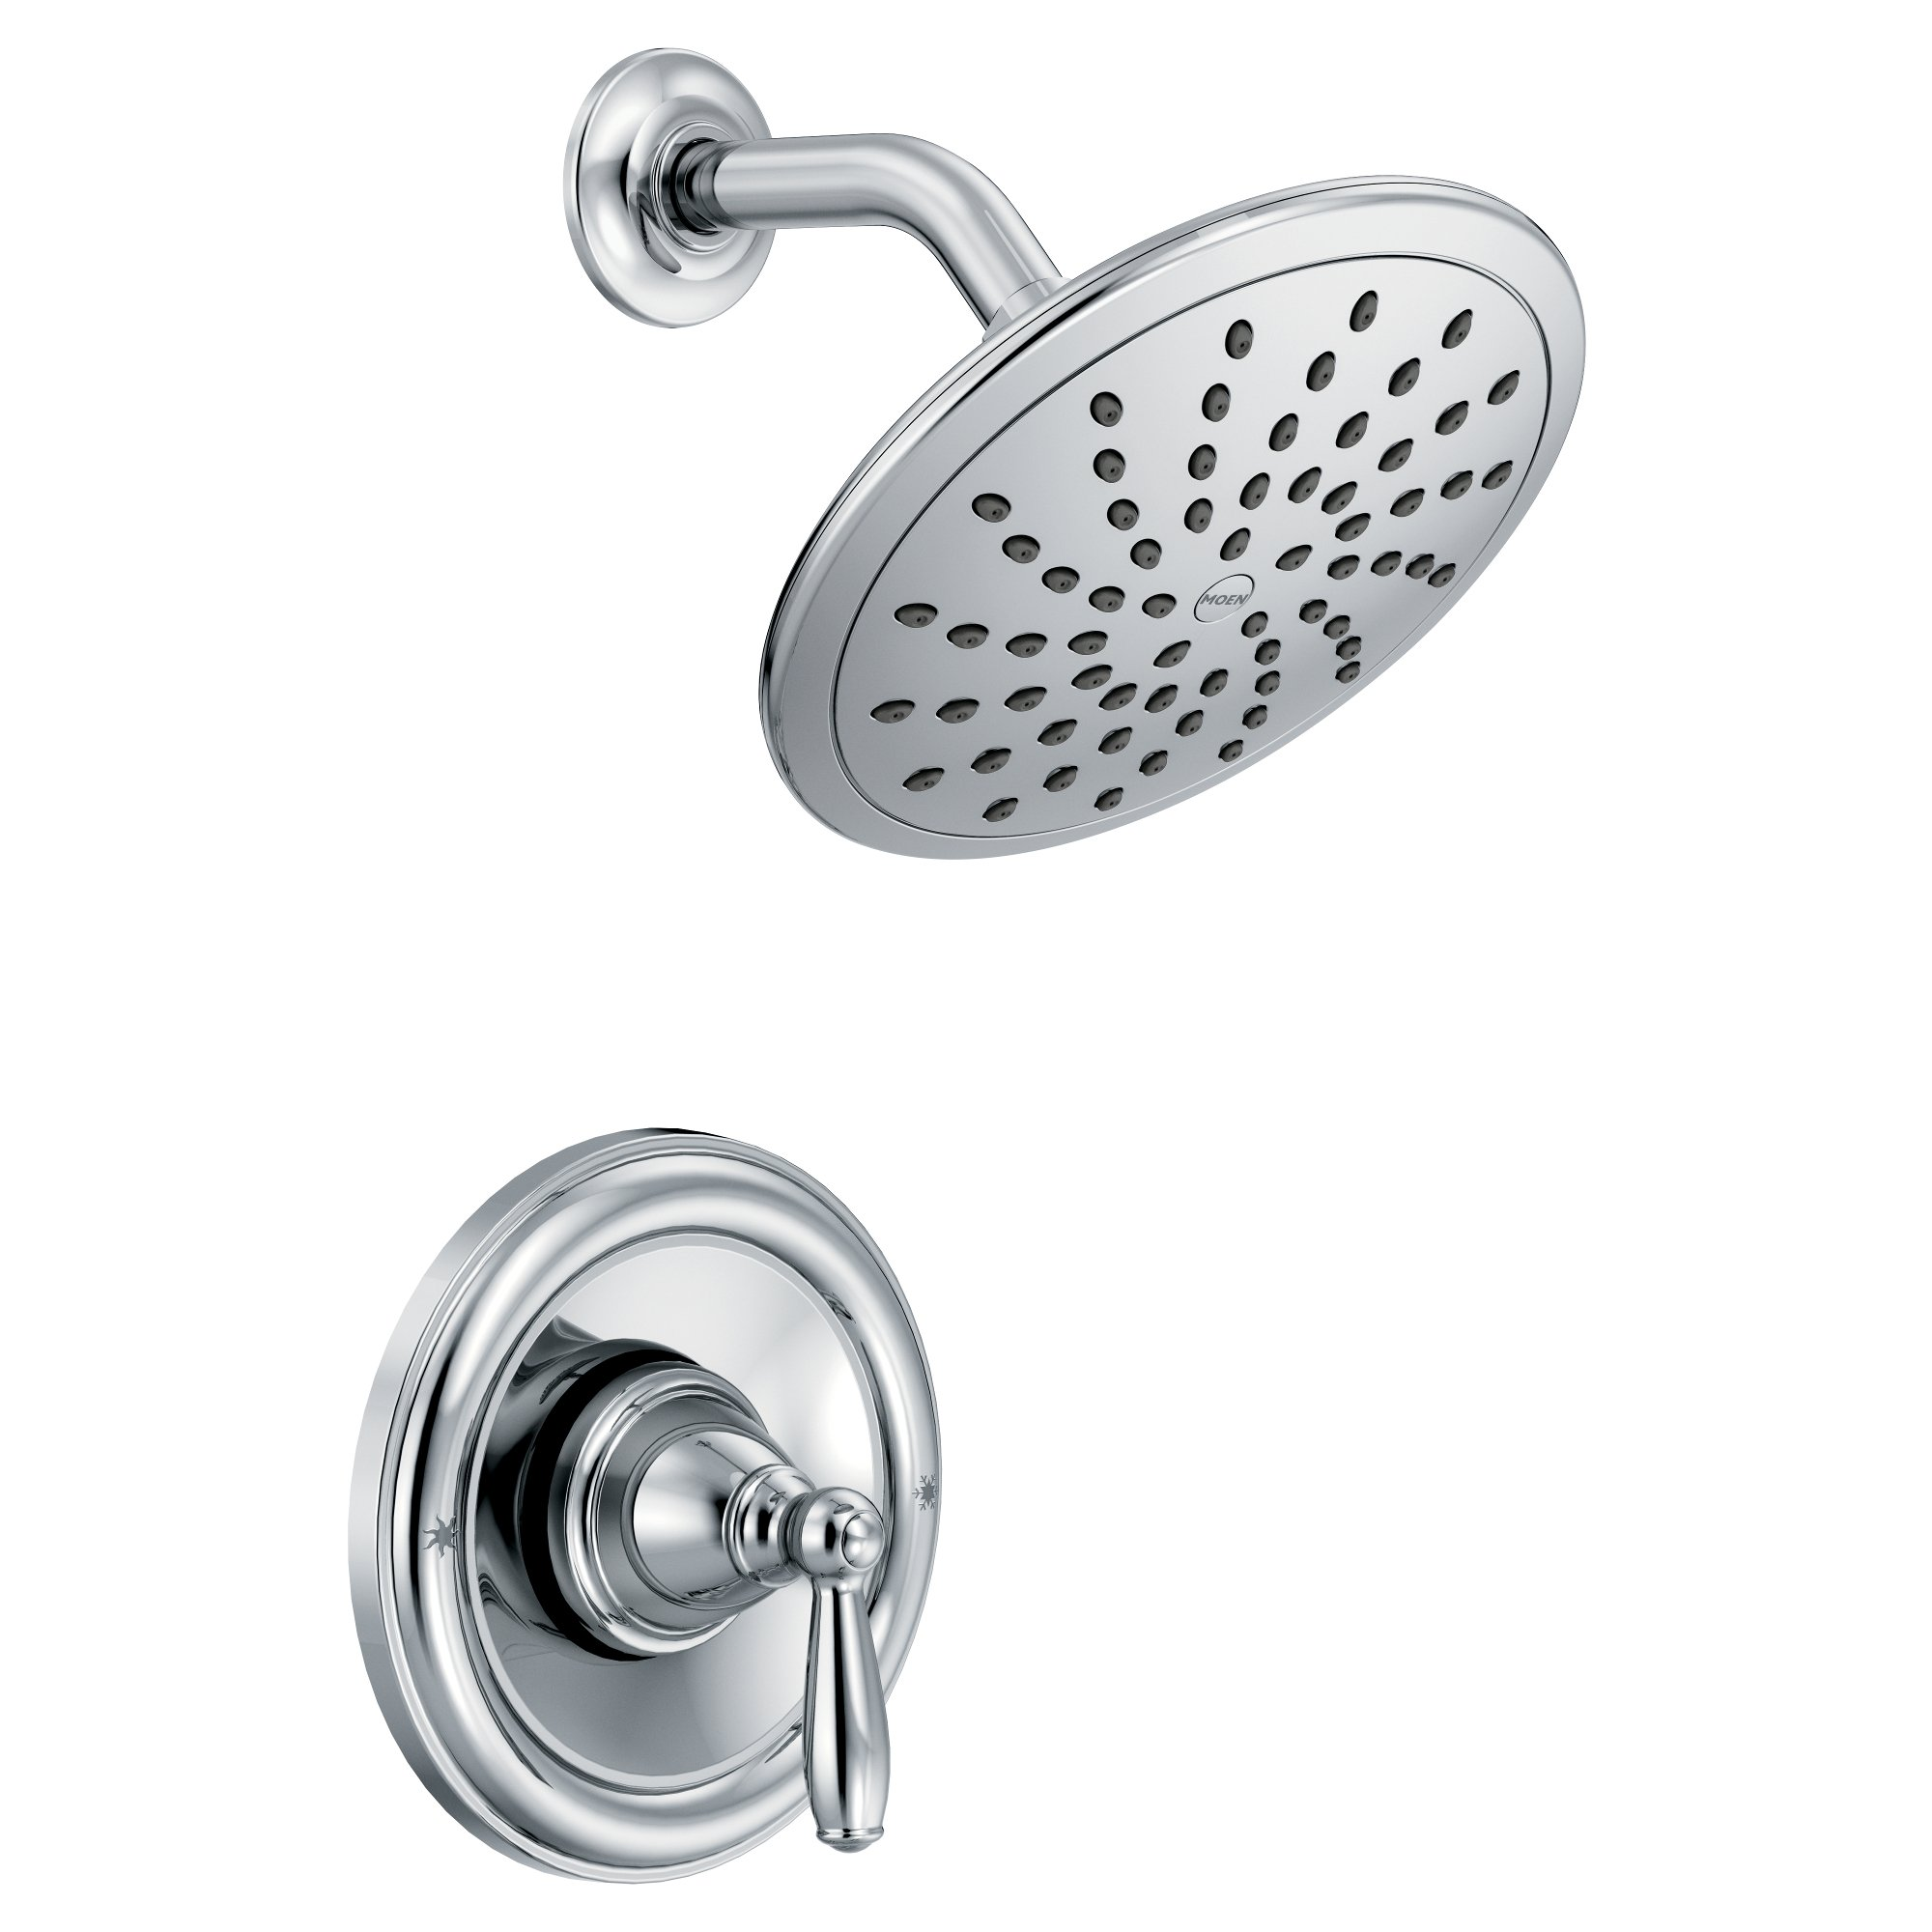 Moen T2252EP Brantford Shower Only System with Rainshower Showerhead without Valve, Chrome